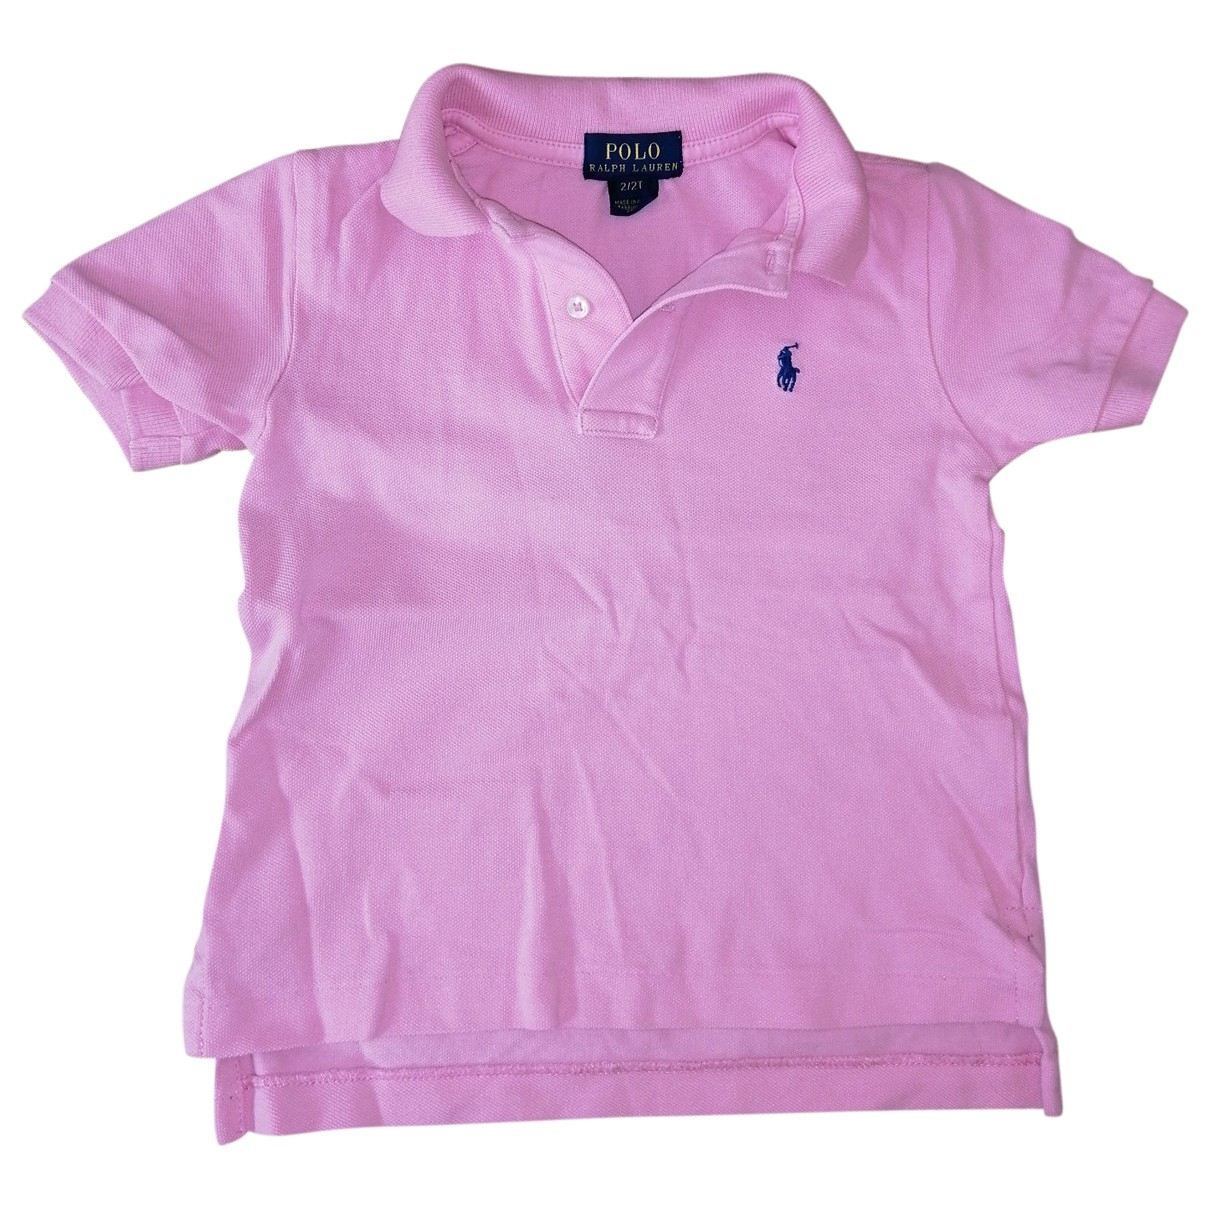 Polo Ralph Lauren \N Pink Cotton  top for Kids 2 years - up to 86cm FR